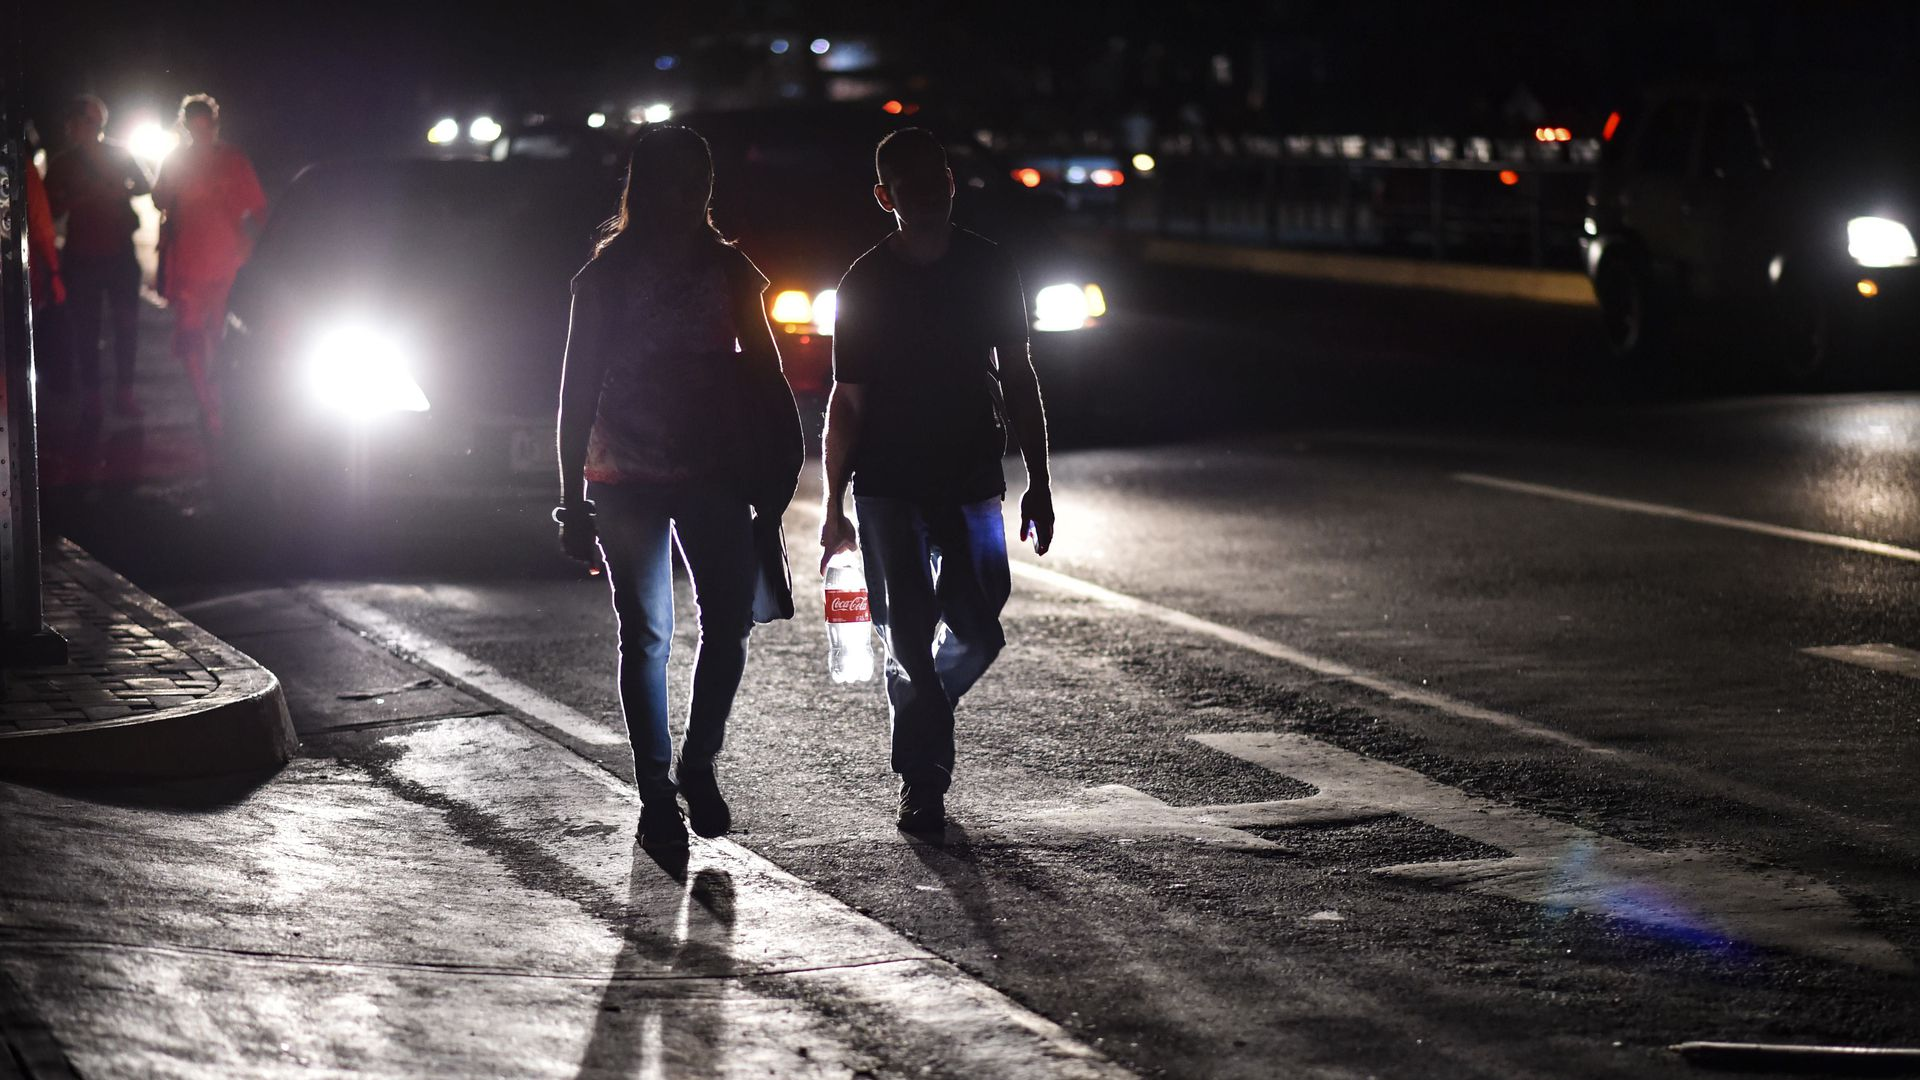 Two Venezuelan pedestrians walk down a dark street.